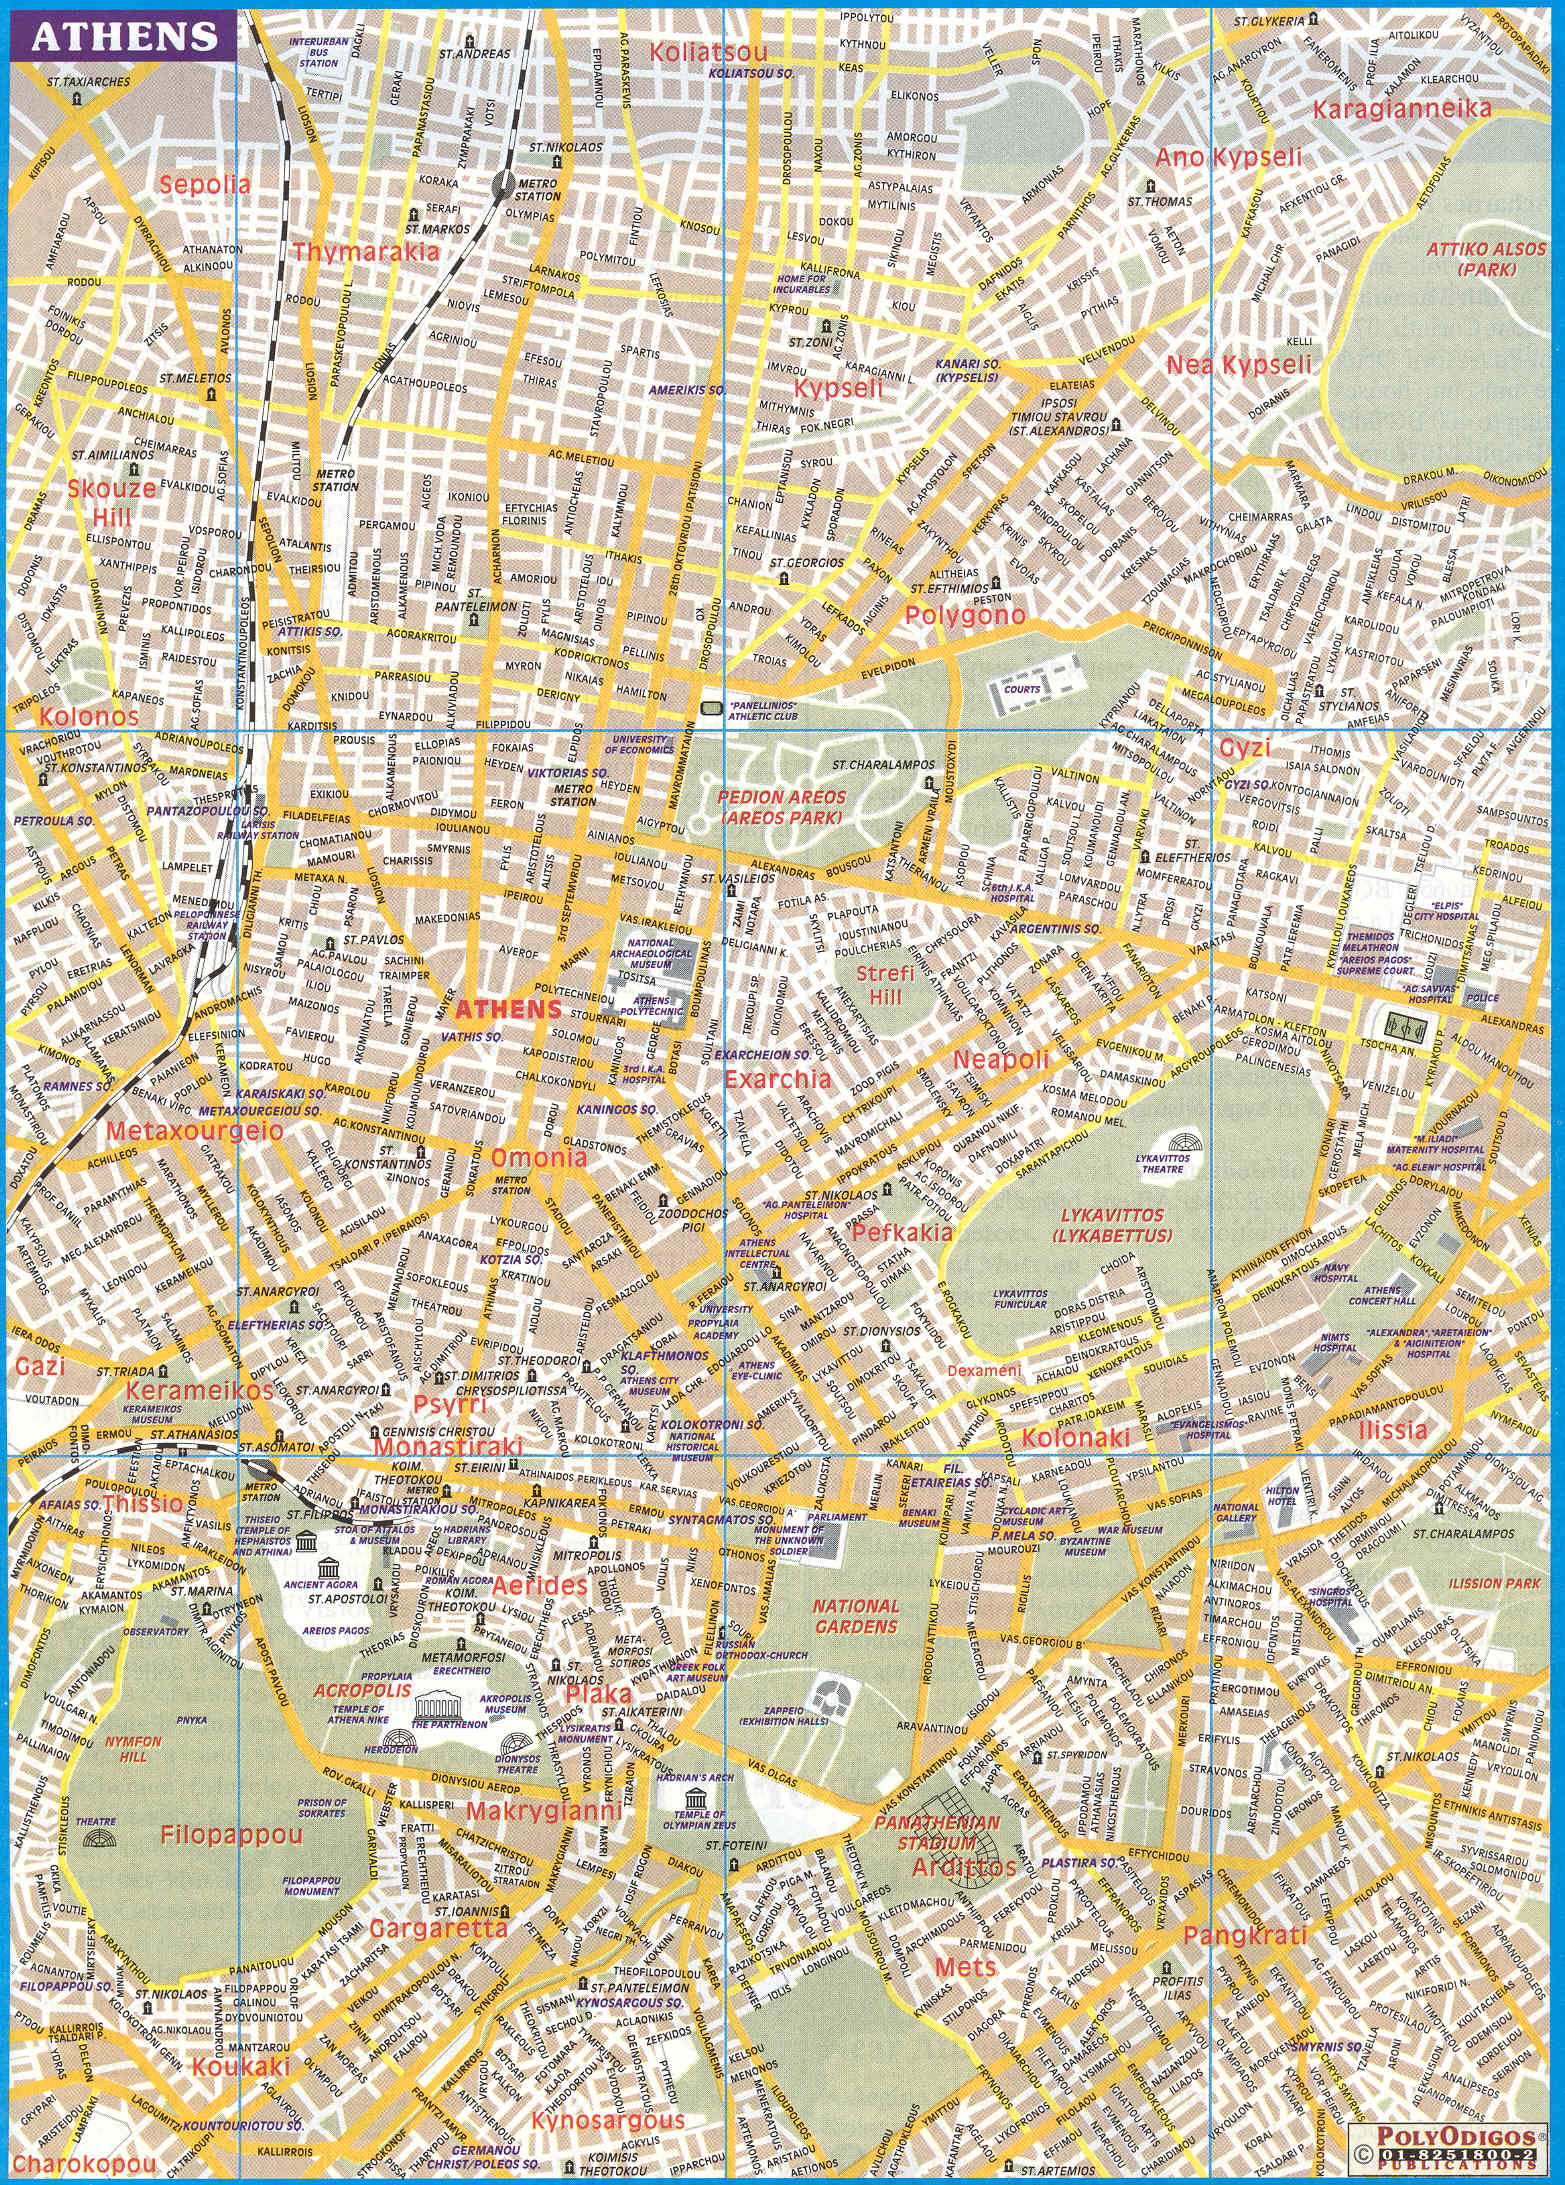 Map Of Athens Greece Large Athens Maps for Free Download and Print | High Resolution